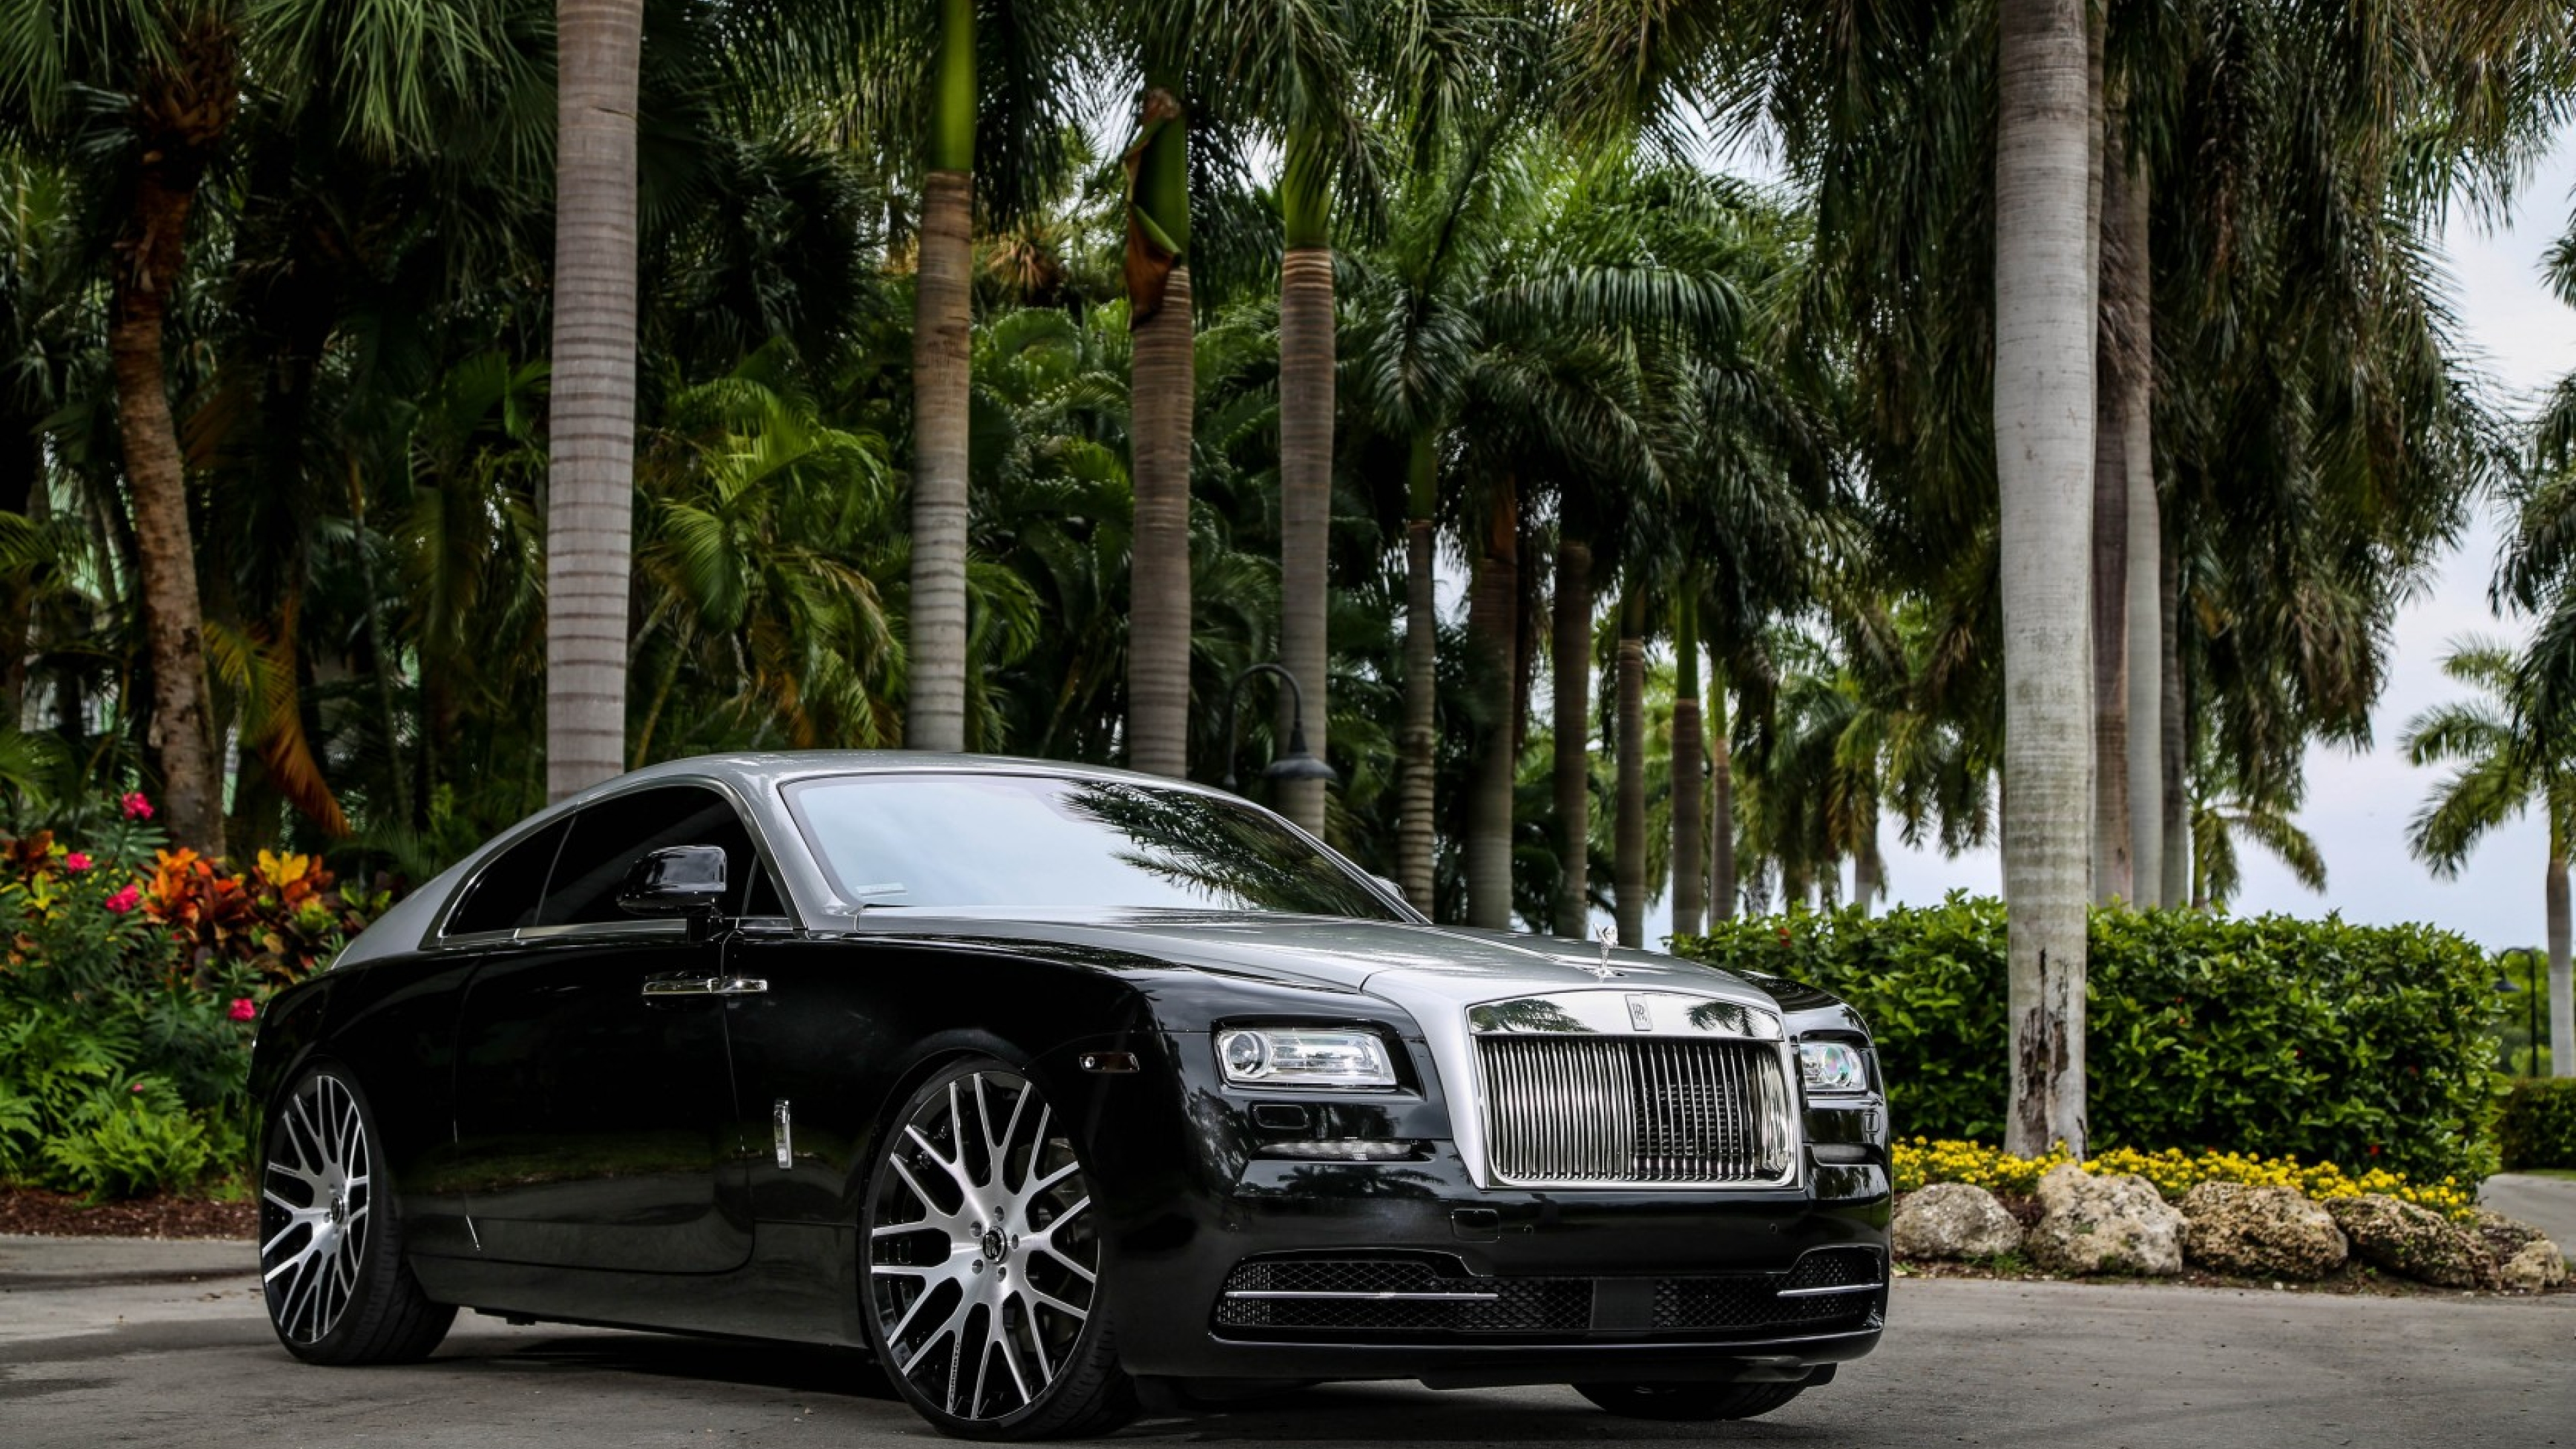 3840x2160 Rolls Royce Wraith Black 4k Wallpaper Hd Cars 4k Wallpapers Images Photos And Background